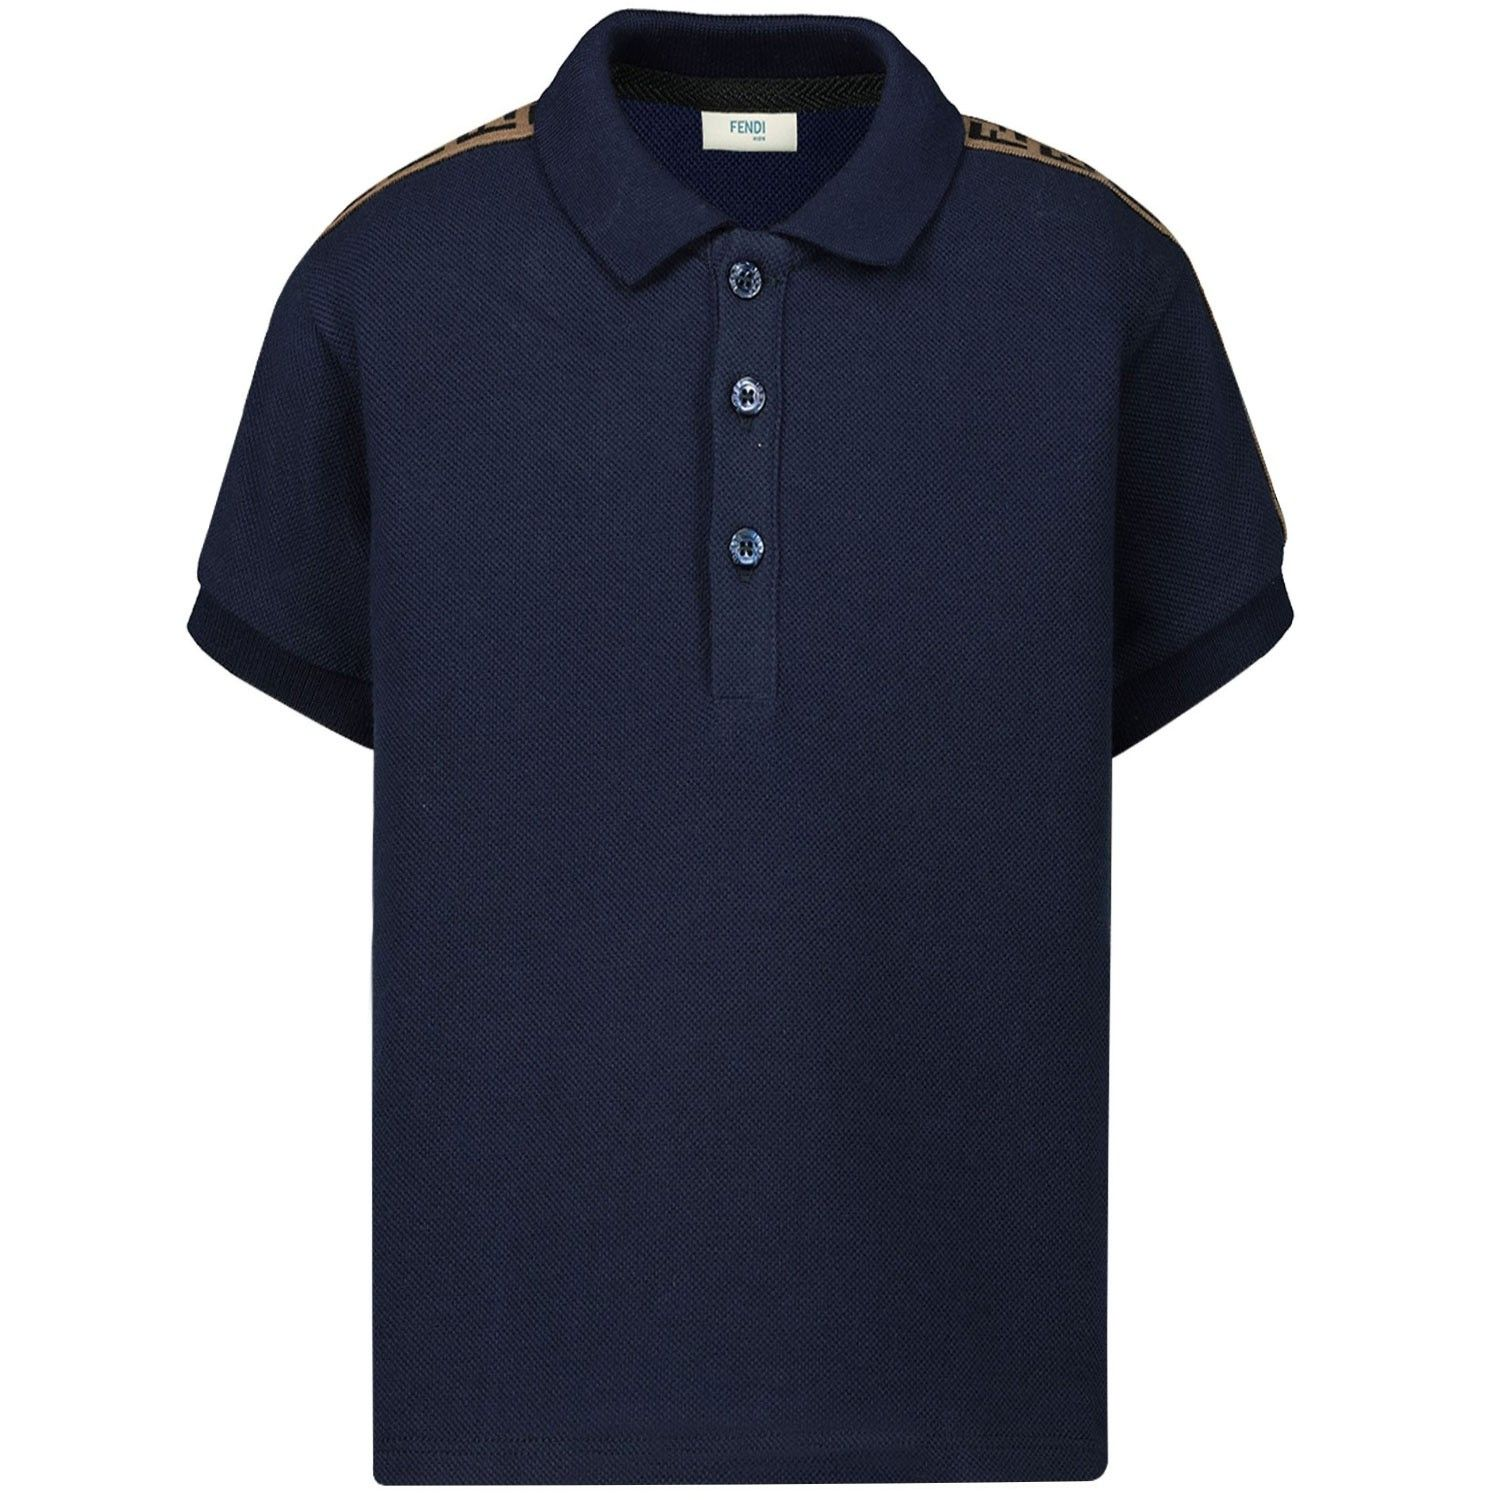 Picture of Fendi JMI293 kids polo shirt navy